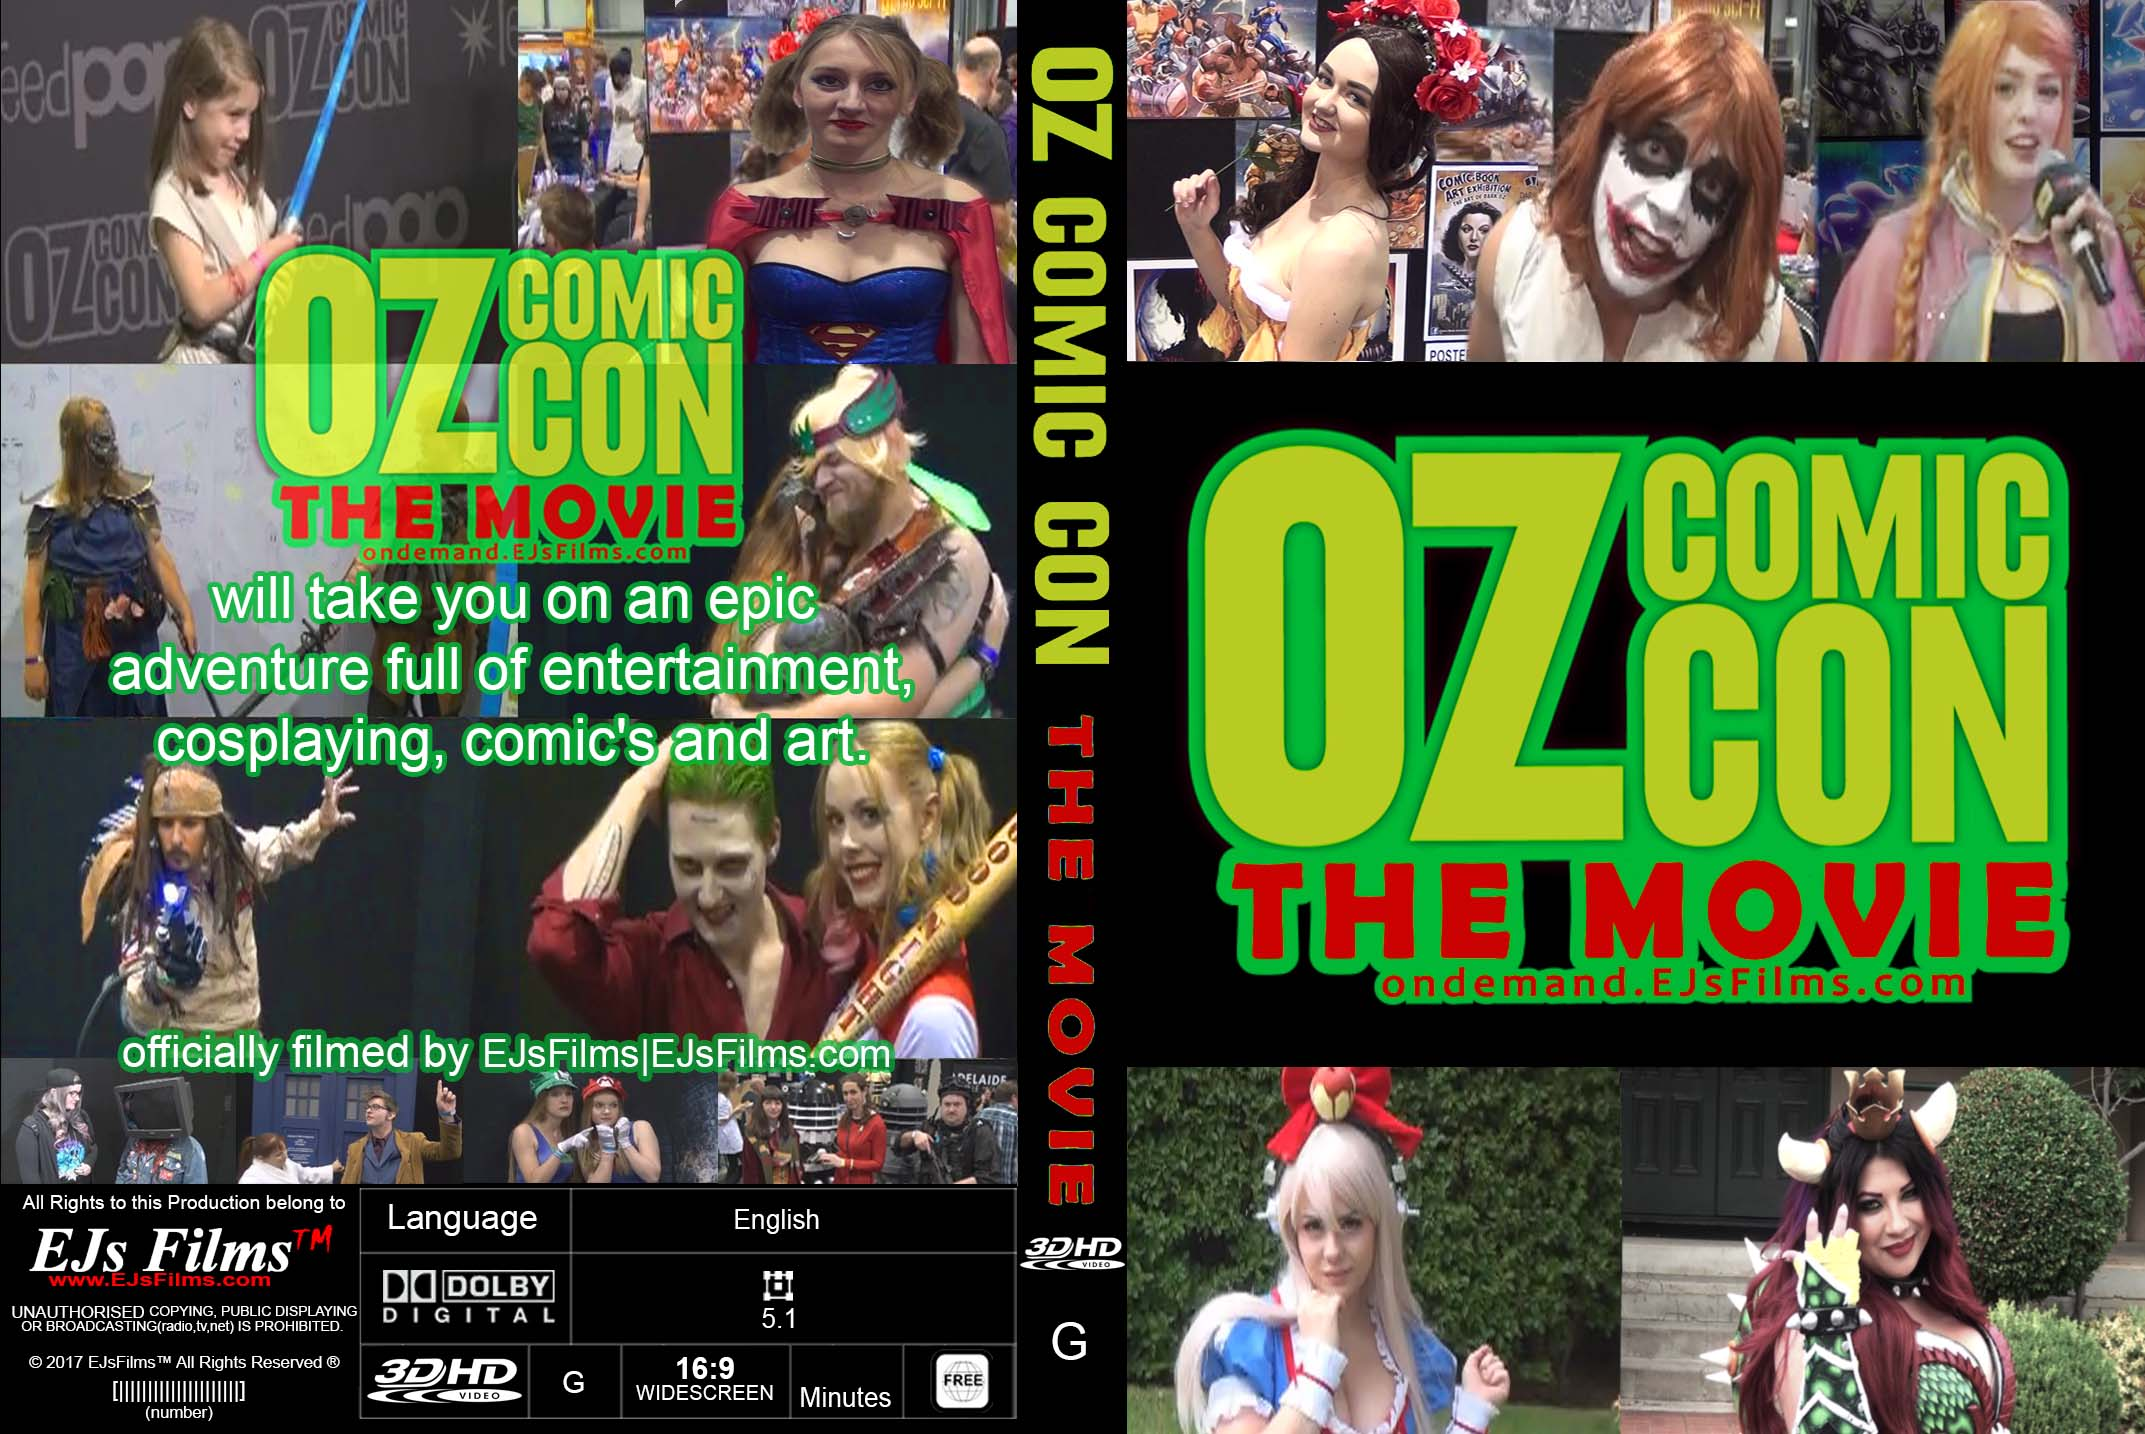 Oz Comic Con The Movie (3D) | PG | Documentary | 2017 | by EJsFilms.com -